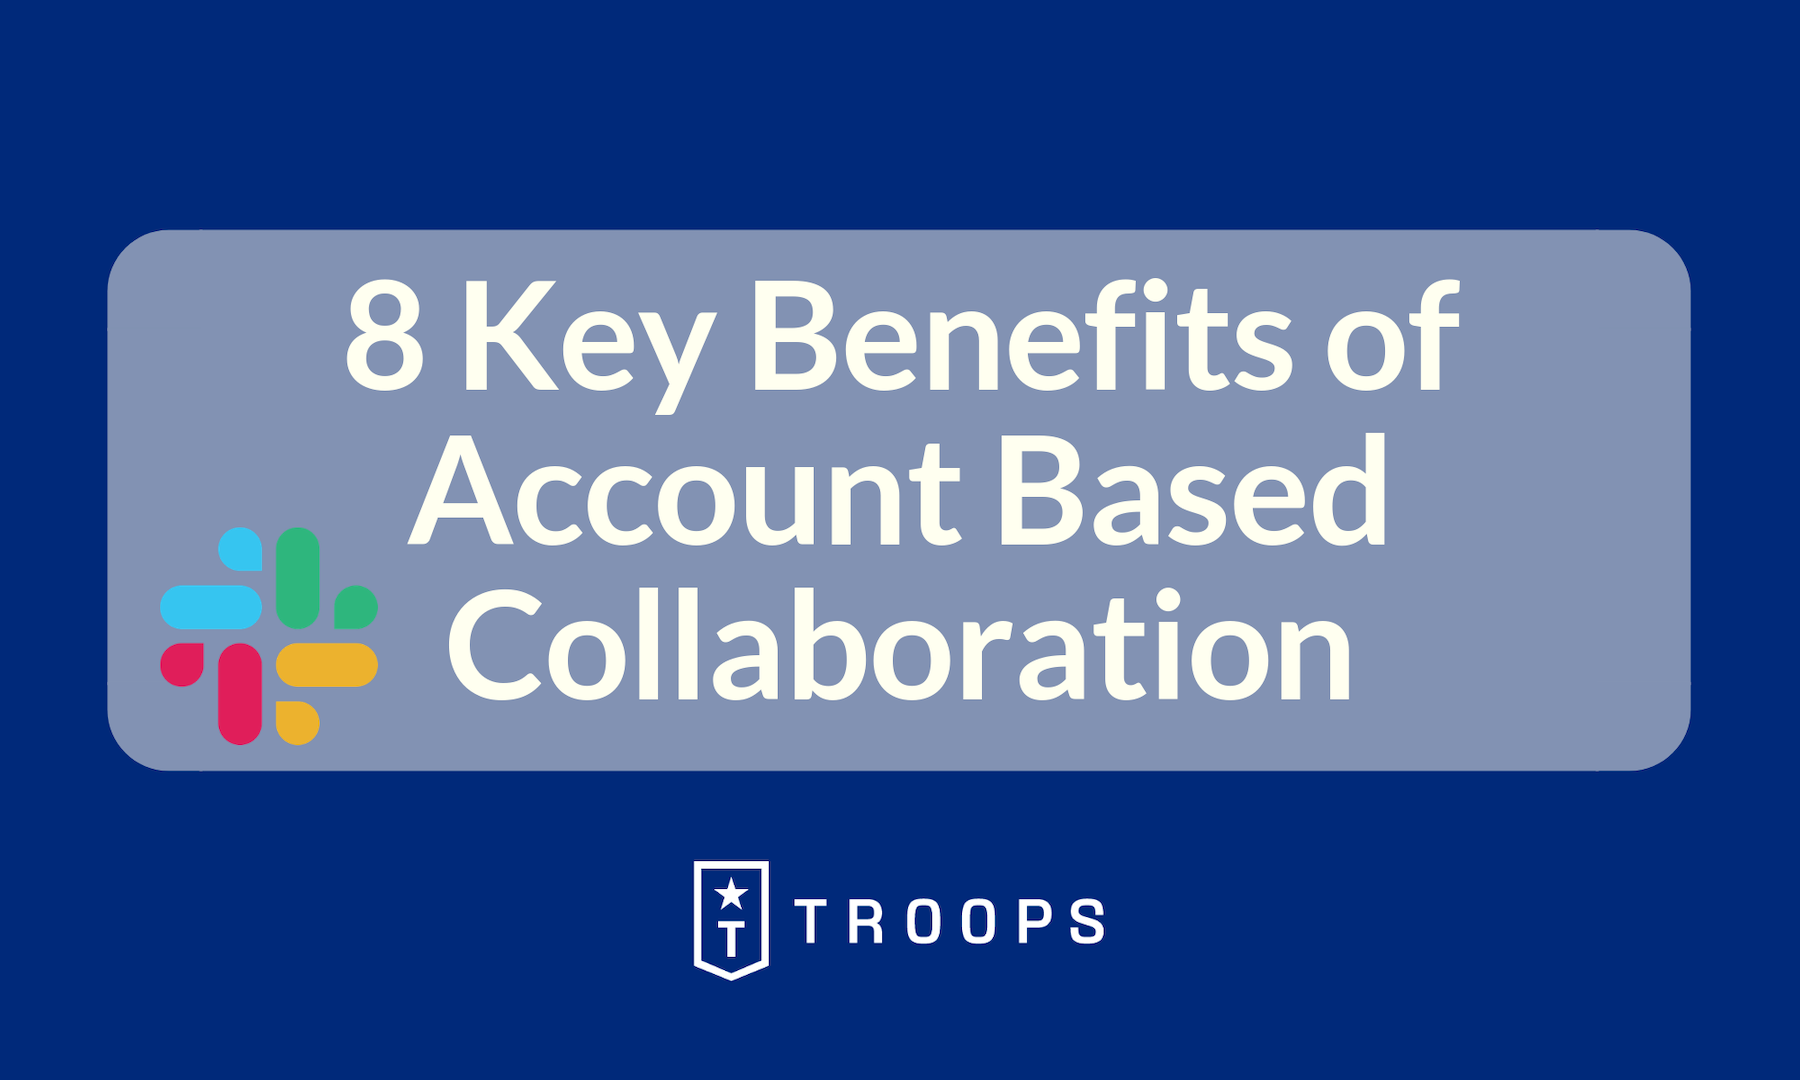 8 Key Benefits of Account Based Collaboration